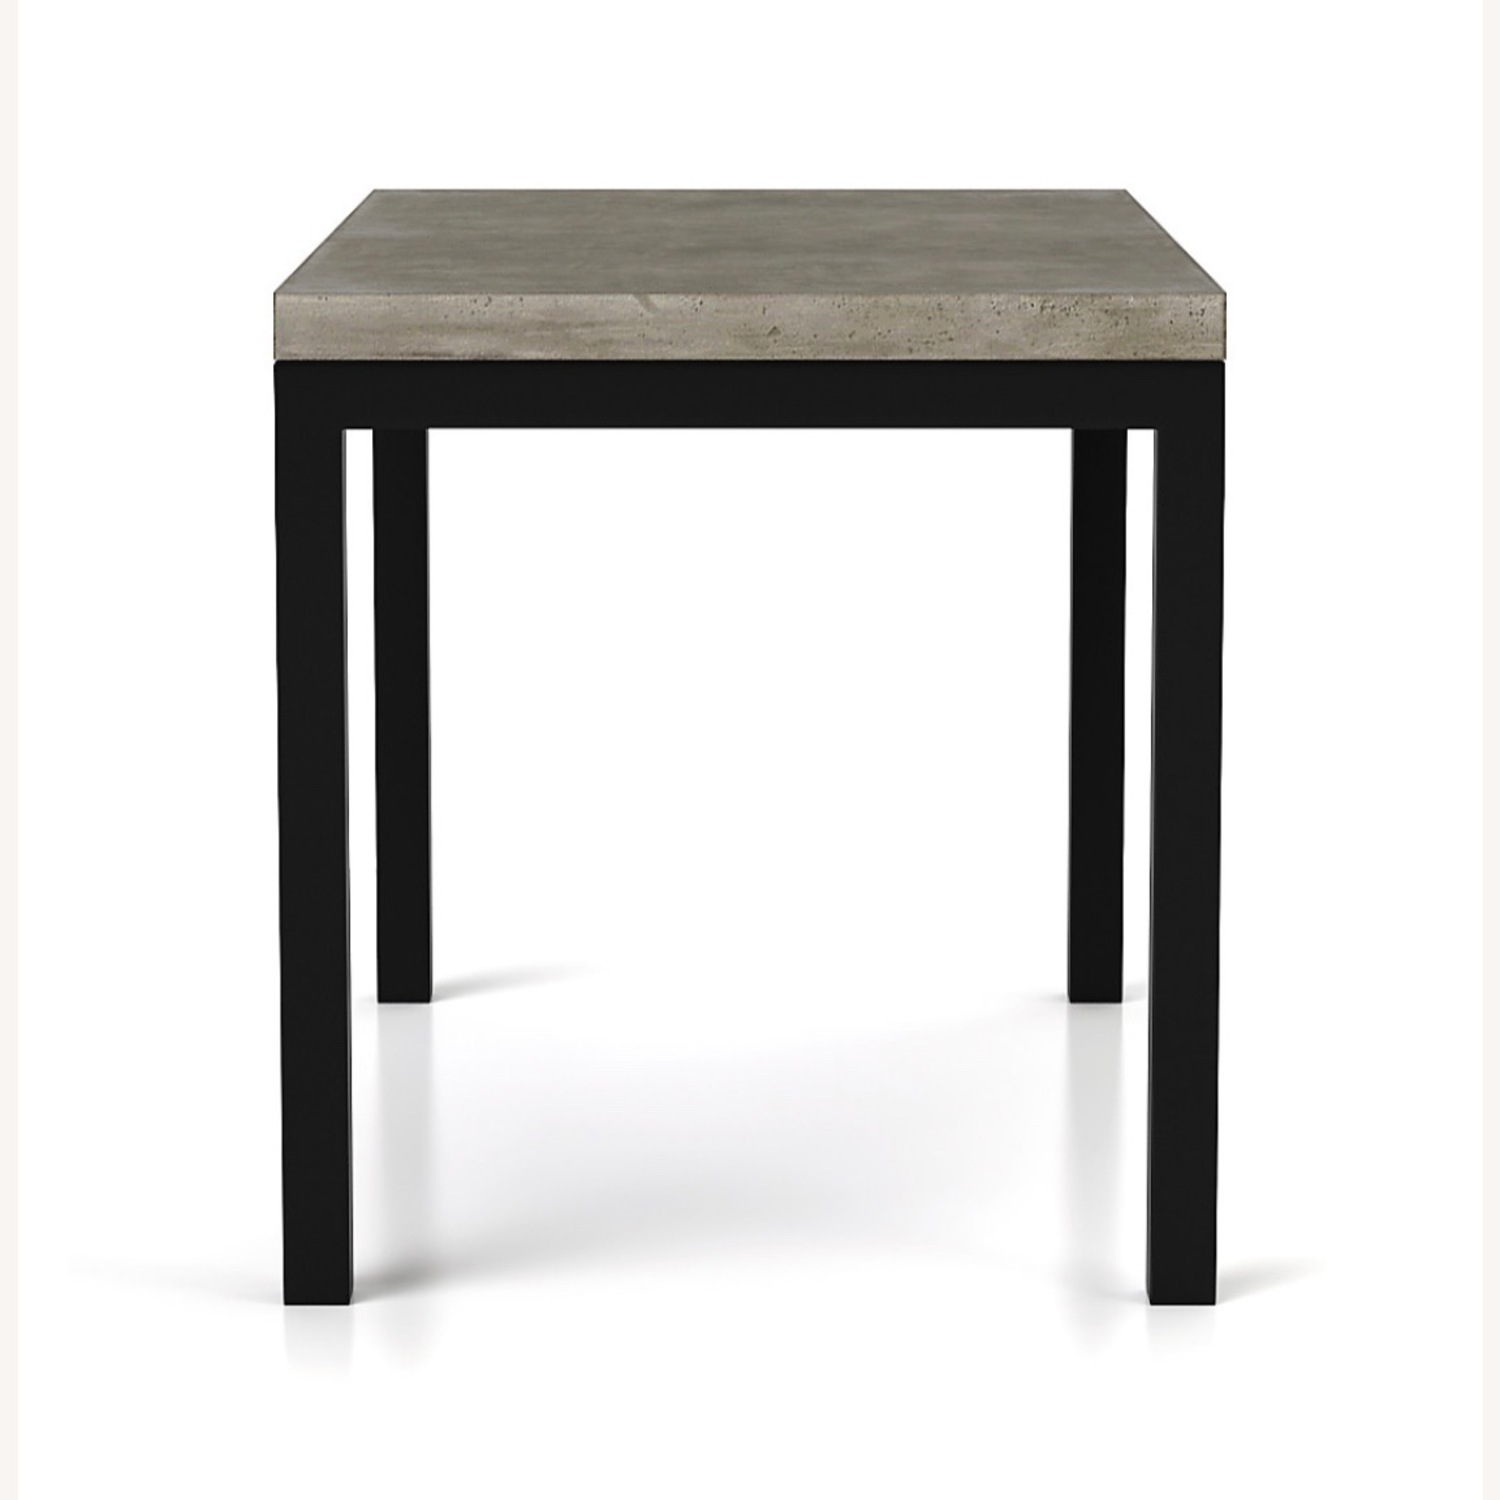 Crate & Barrel Concrete High Dining Table - image-17